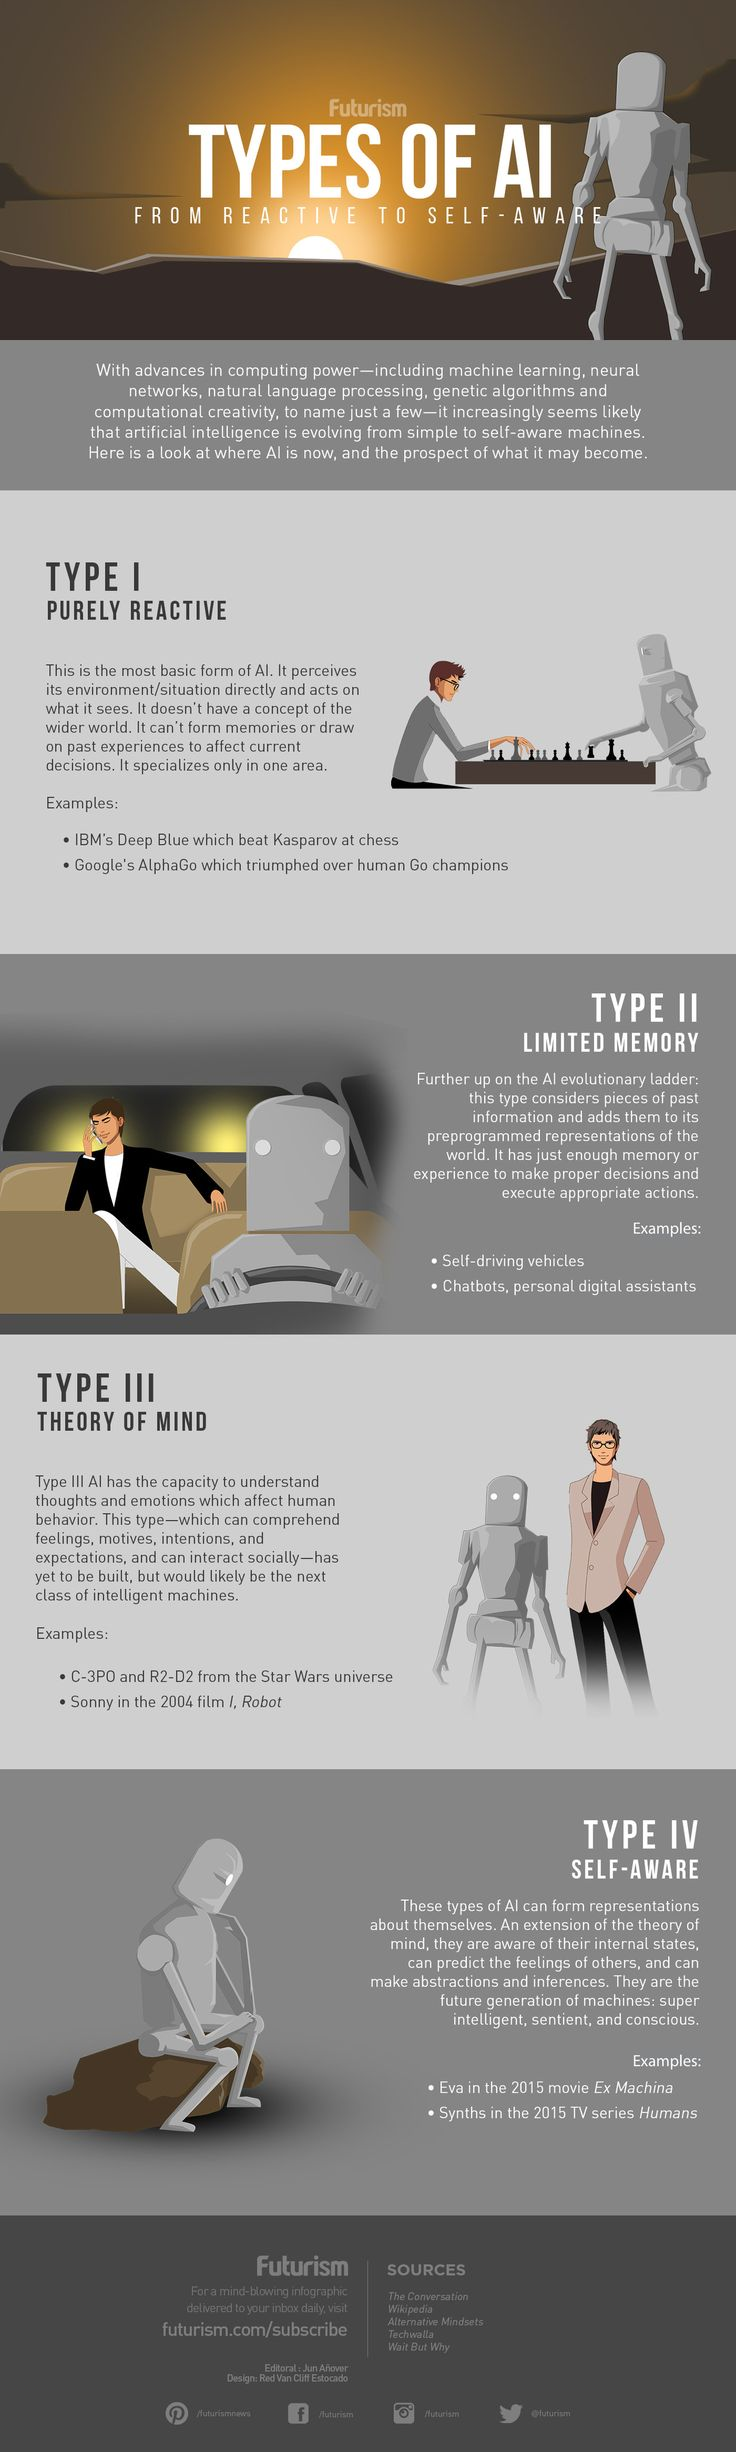 Computing advances have fueled the evolution of AI. Here's a look at the 4 types of artificial intelligence. https://futurism.com/images/types-of-ai-from-reactive-to-self-aware-infographic/?utm_campaign=coschedule&utm_source=pinterest&utm_medium=Futurism&utm_content=Types%20of%20AI%3A%20From%20Reactive%20to%20Self-Aware%20%5BINFOGRAPHIC%5D